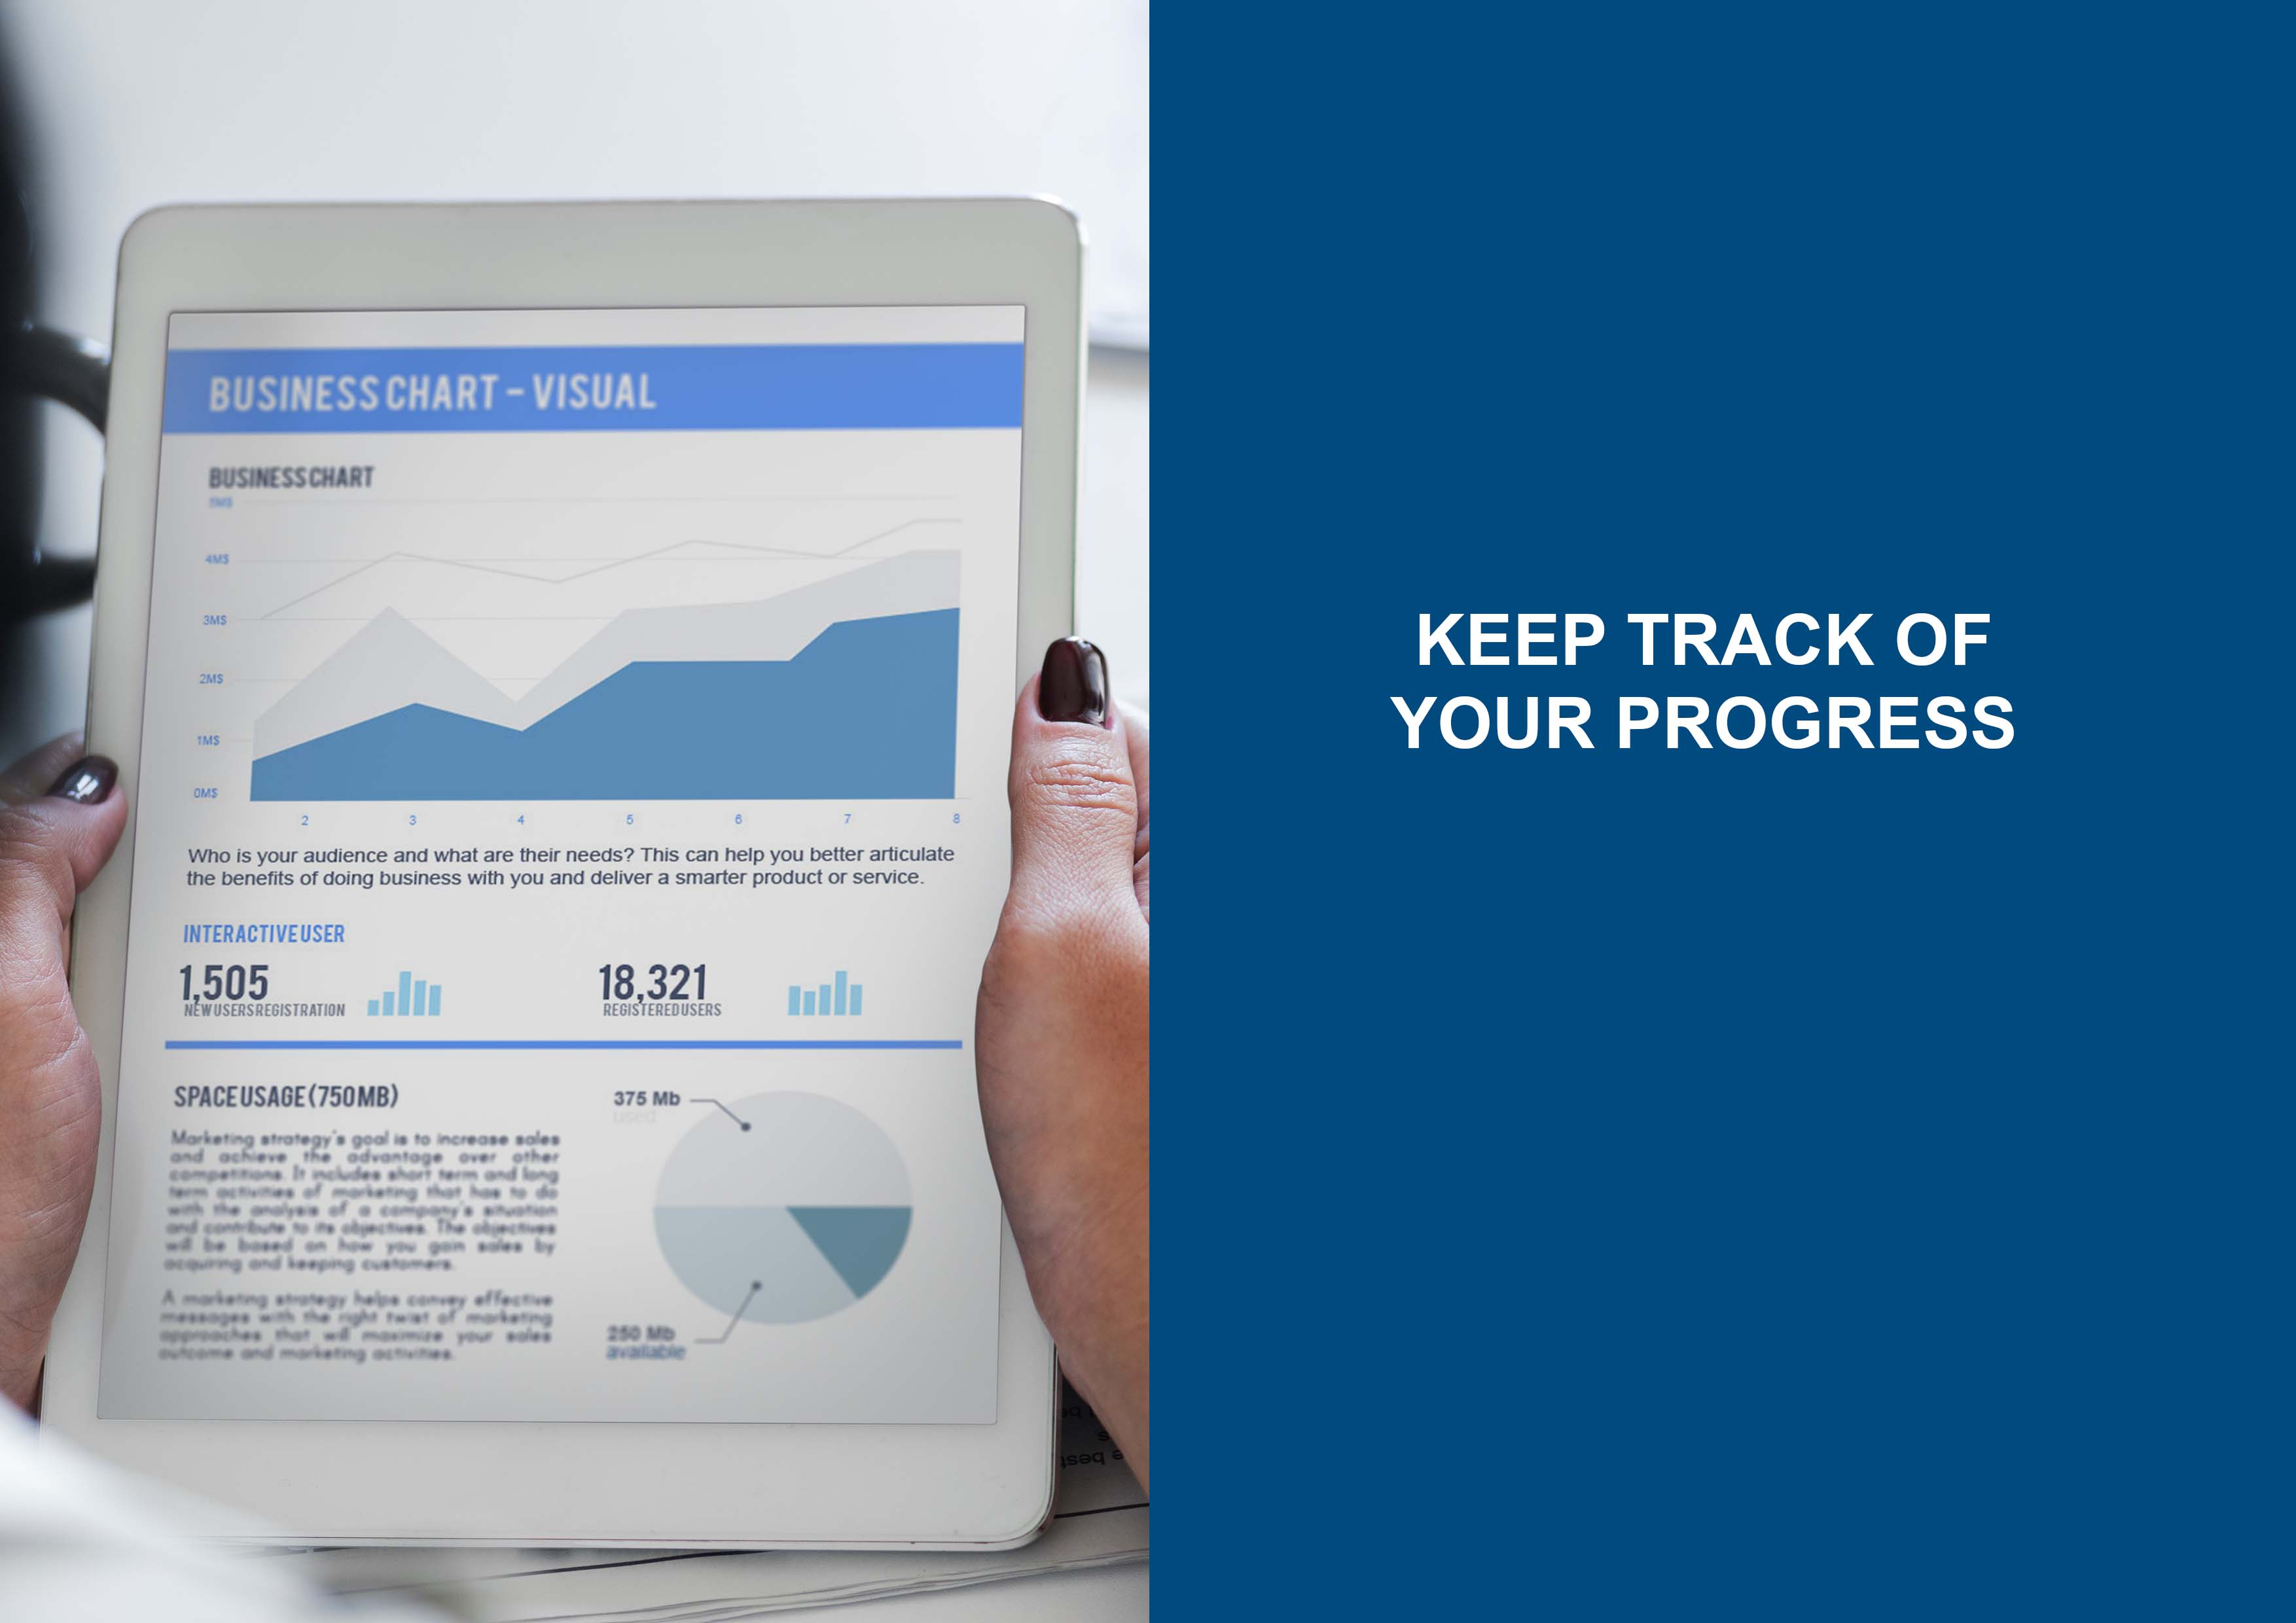 Keep Track of Your Progress